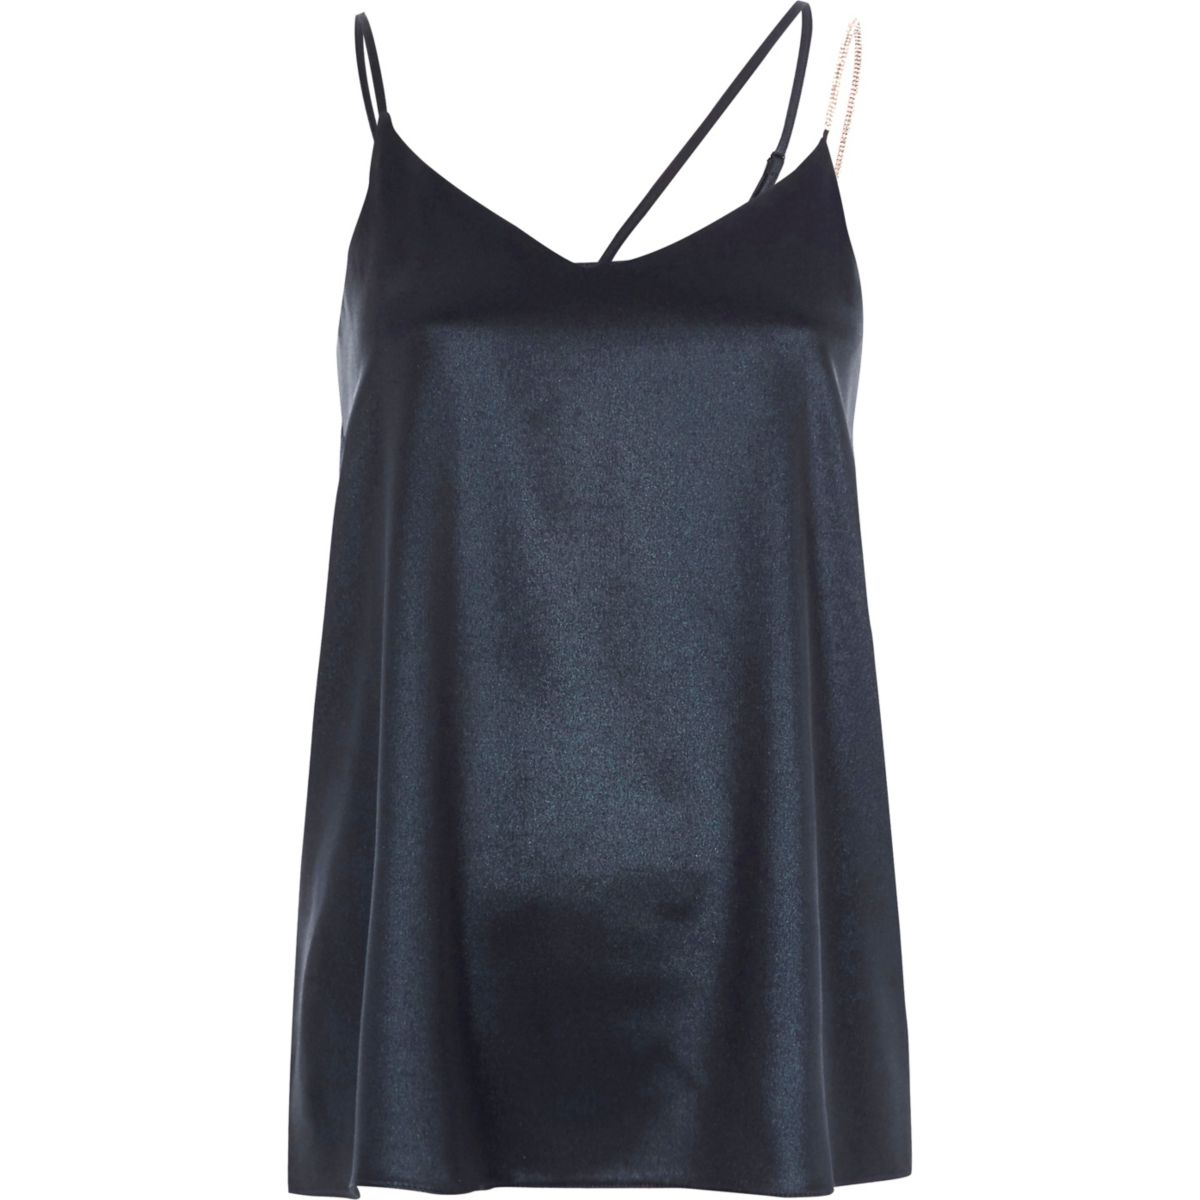 Blue metallic embellished strap cami top